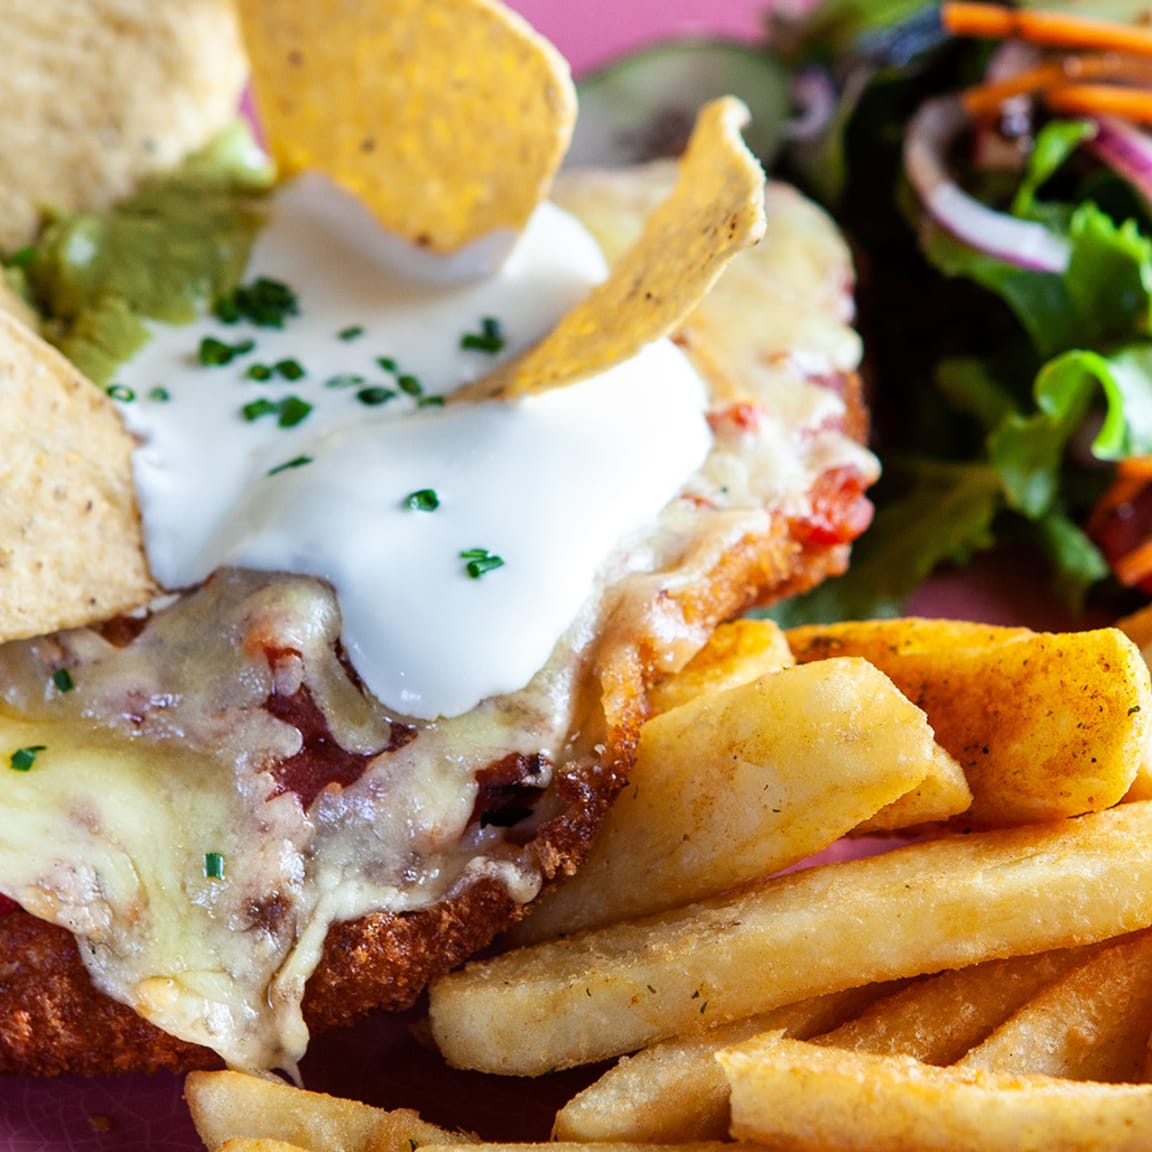 Beach House Bar & Grill: 2 For 1 Schnitzels for $15